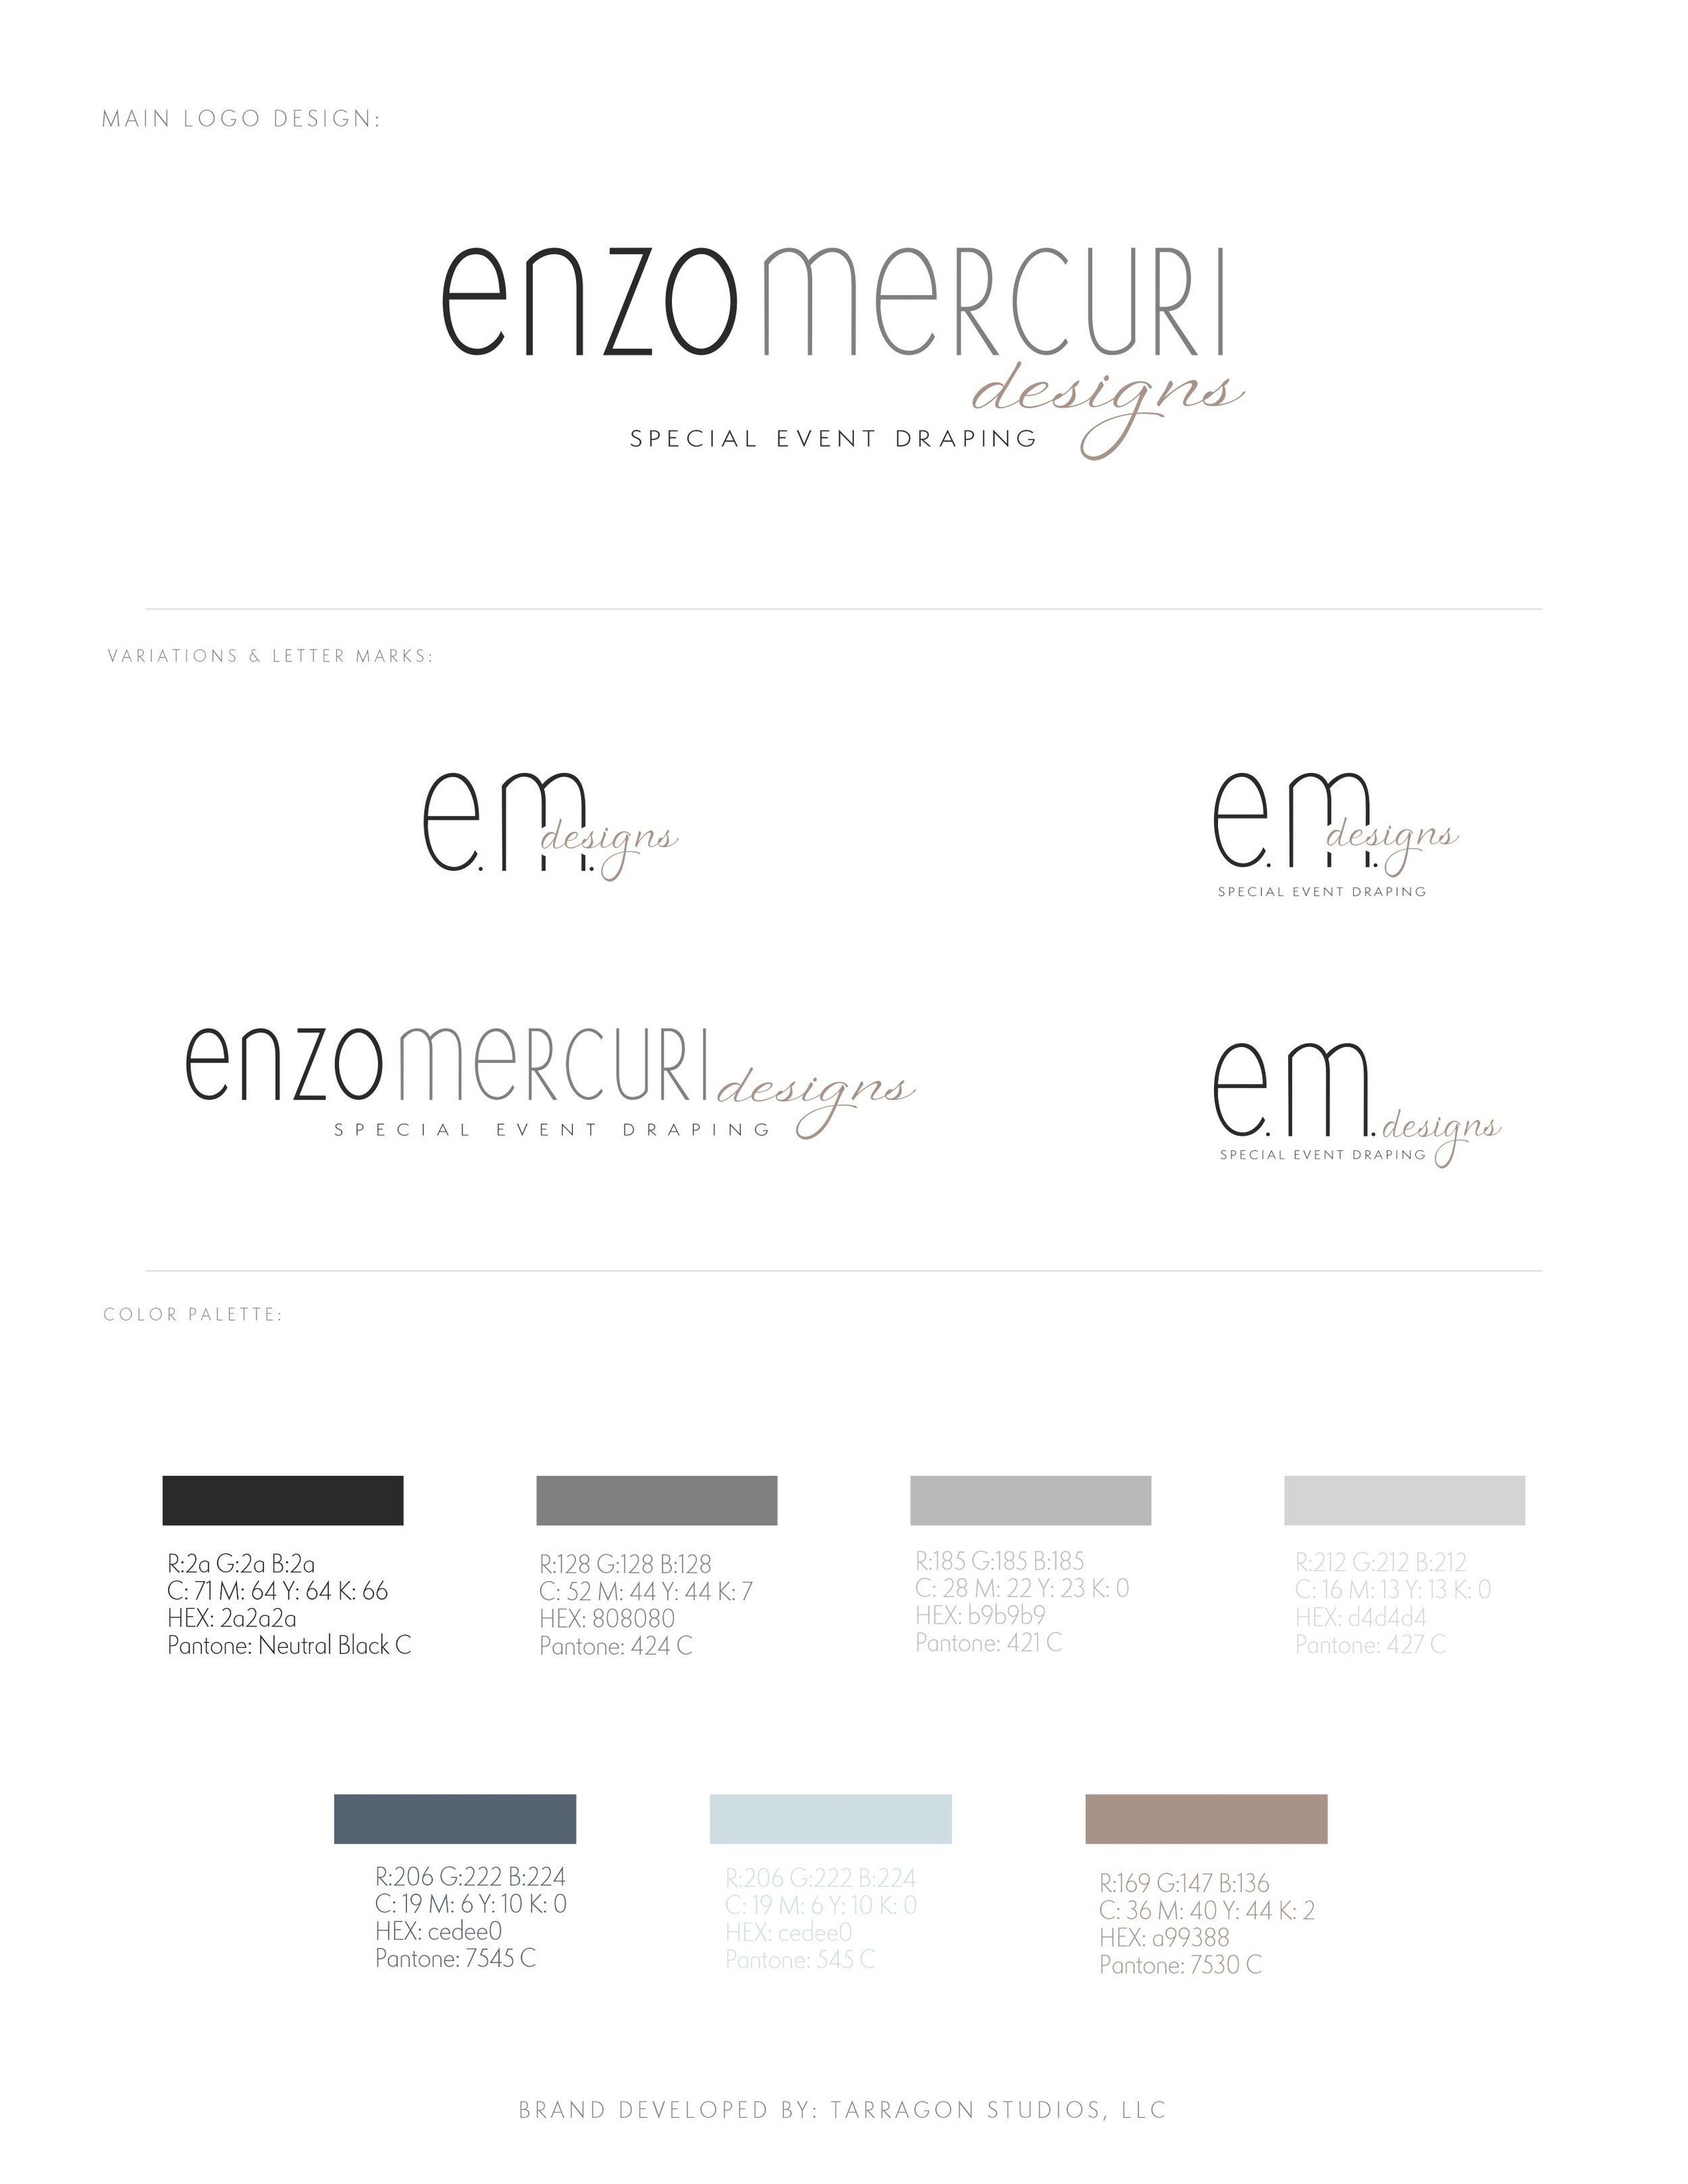 Chic, Minimal, unique and brand for Enzo Mercuri Designs, Special Event Draping by Tarragon Studios. Keep Reading to see all the gorgeous high-end inspired logo variations! #logo #design #chic #minimal